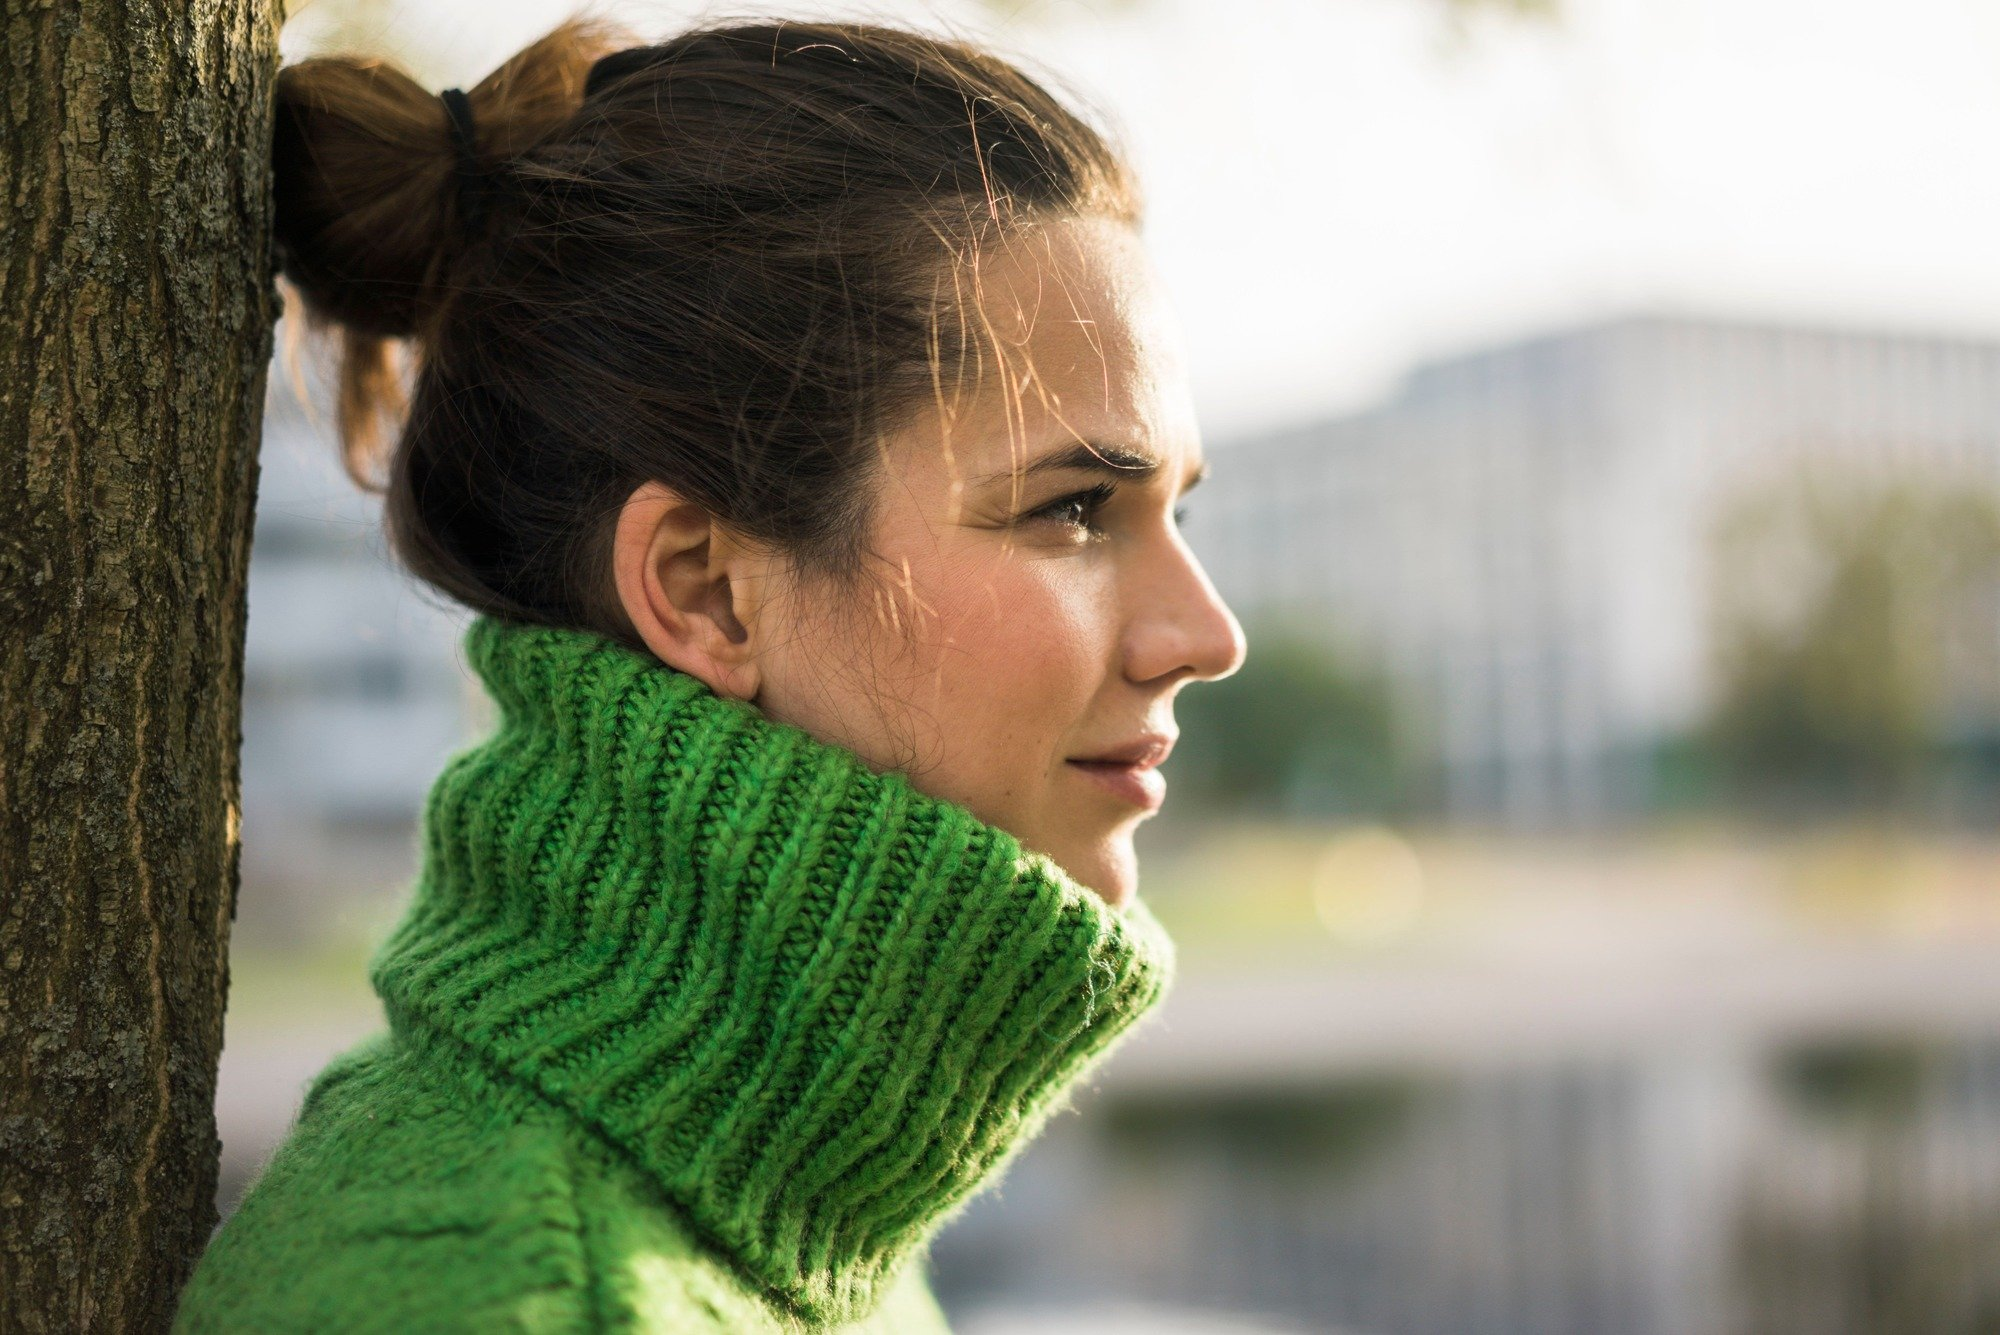 School Run Hairstyles: Shot of woman with dark brown hair styled into a knot bun hairstyle, wearing green turtleneck